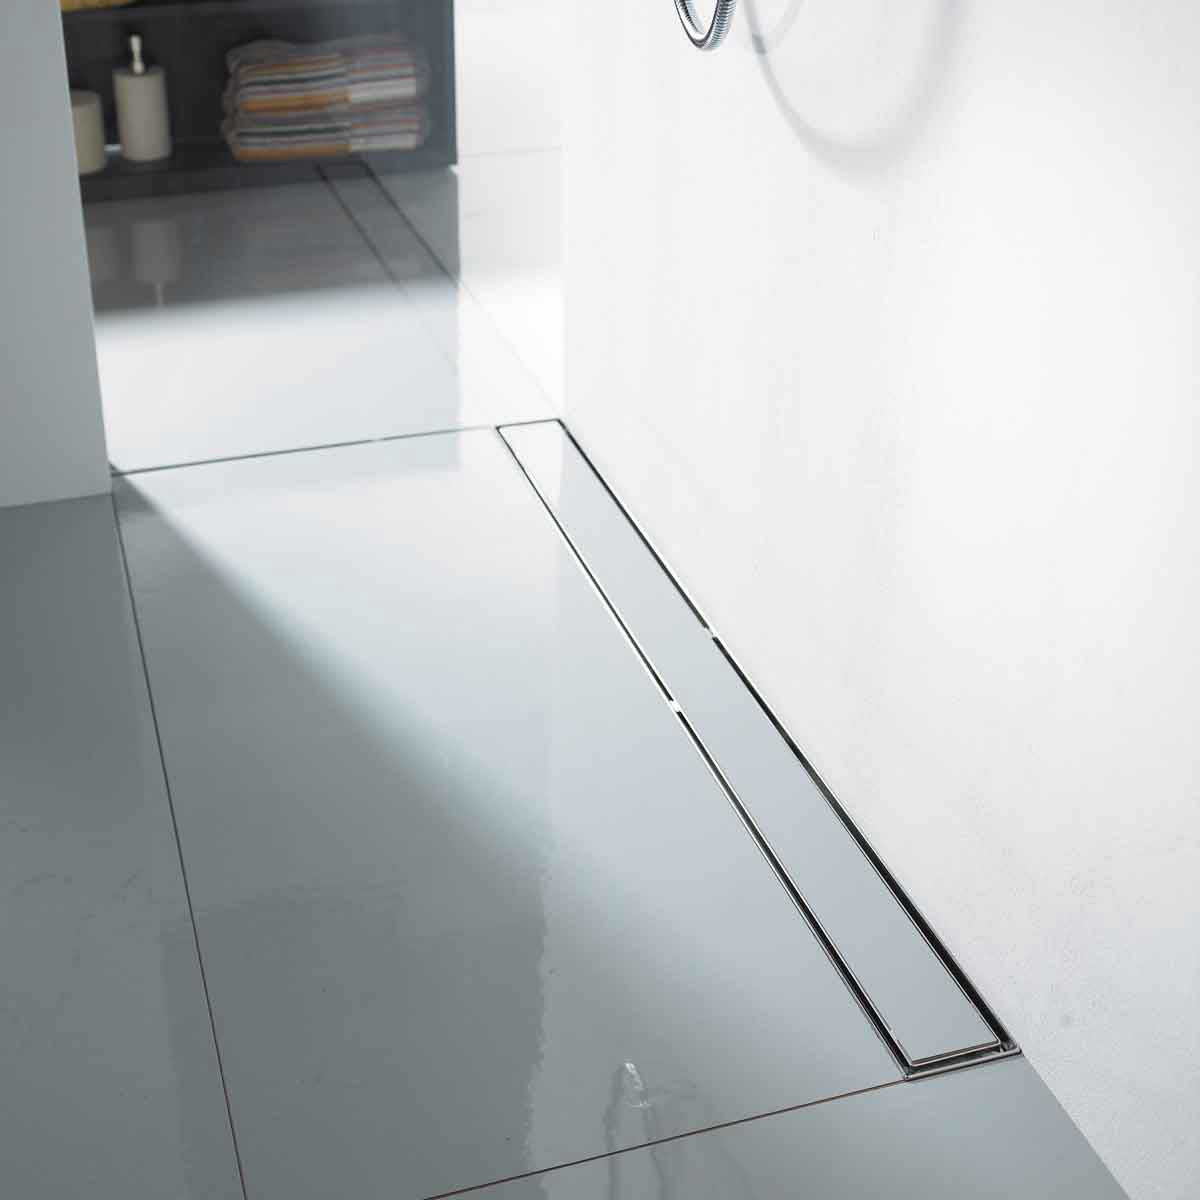 37335-93866 Tile In Shower Channels & Grates By ACO